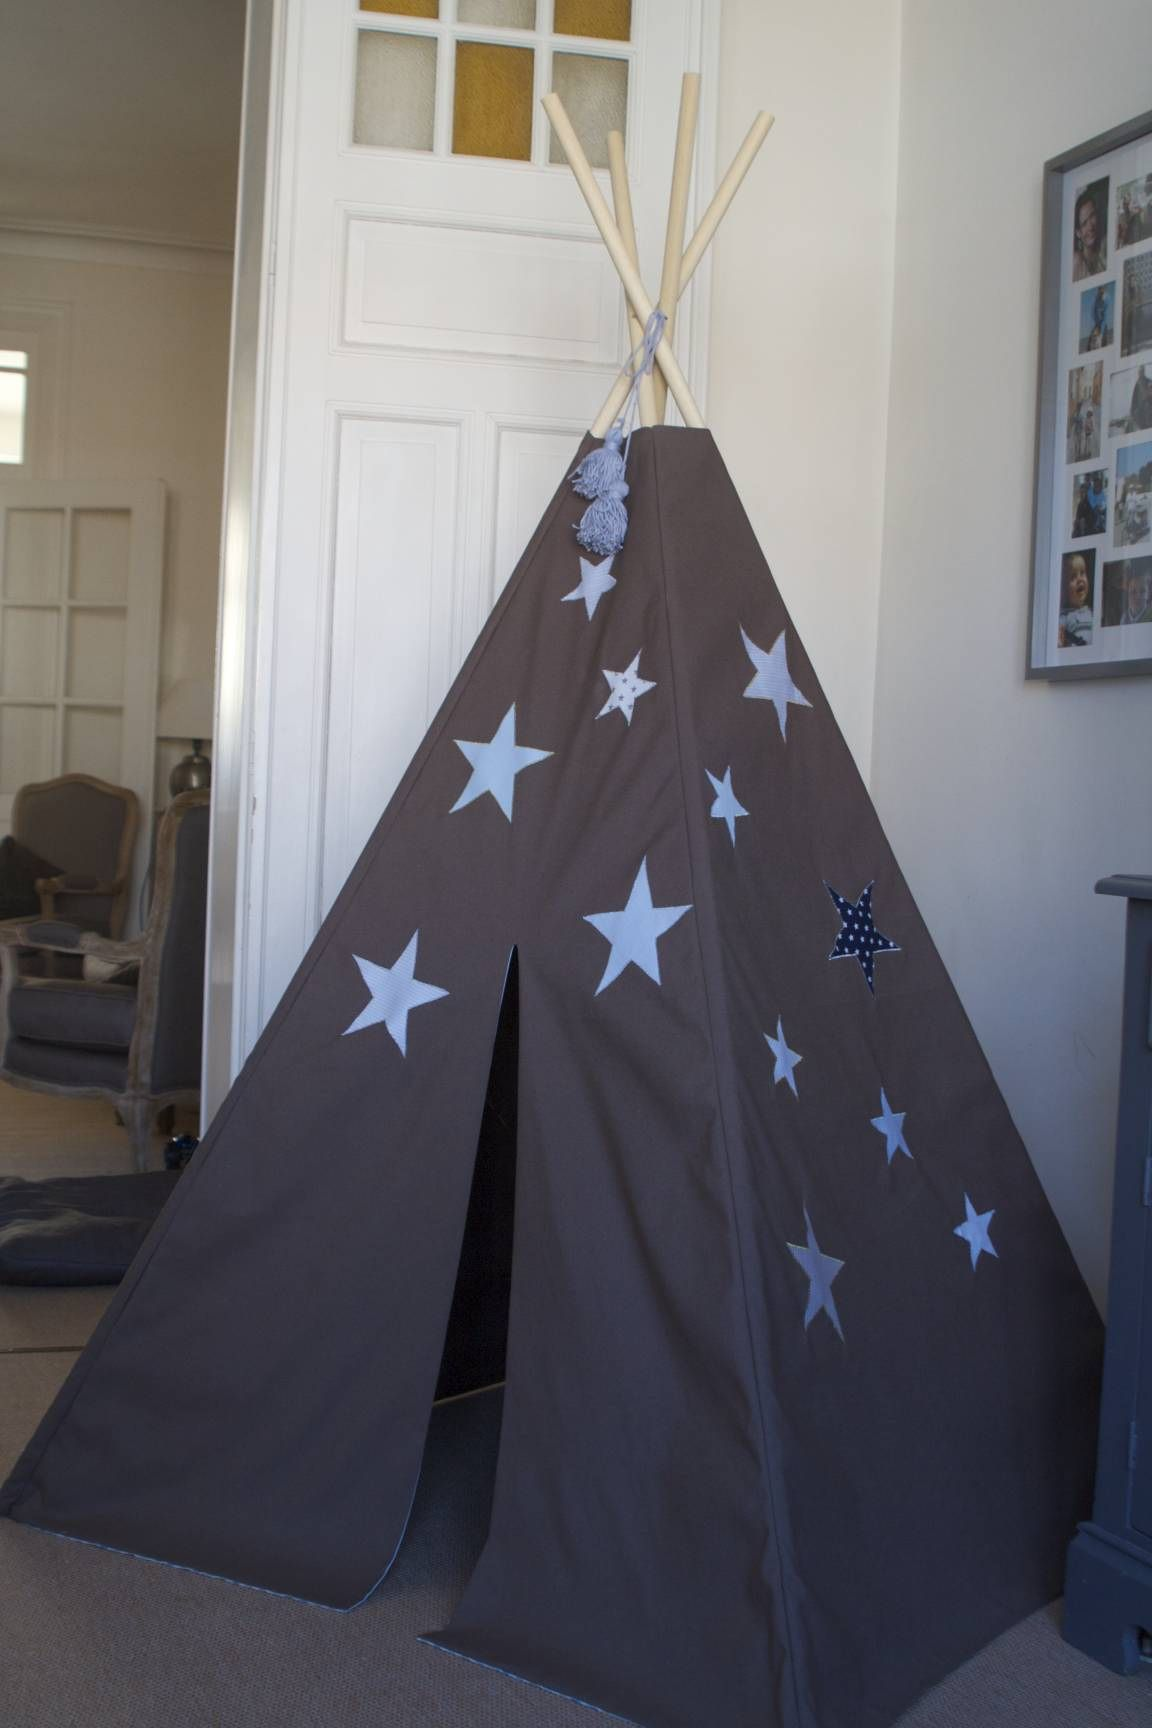 tipi mes petits riens teepee pinterest petit rien ma petite et amenagement chambre enfant. Black Bedroom Furniture Sets. Home Design Ideas